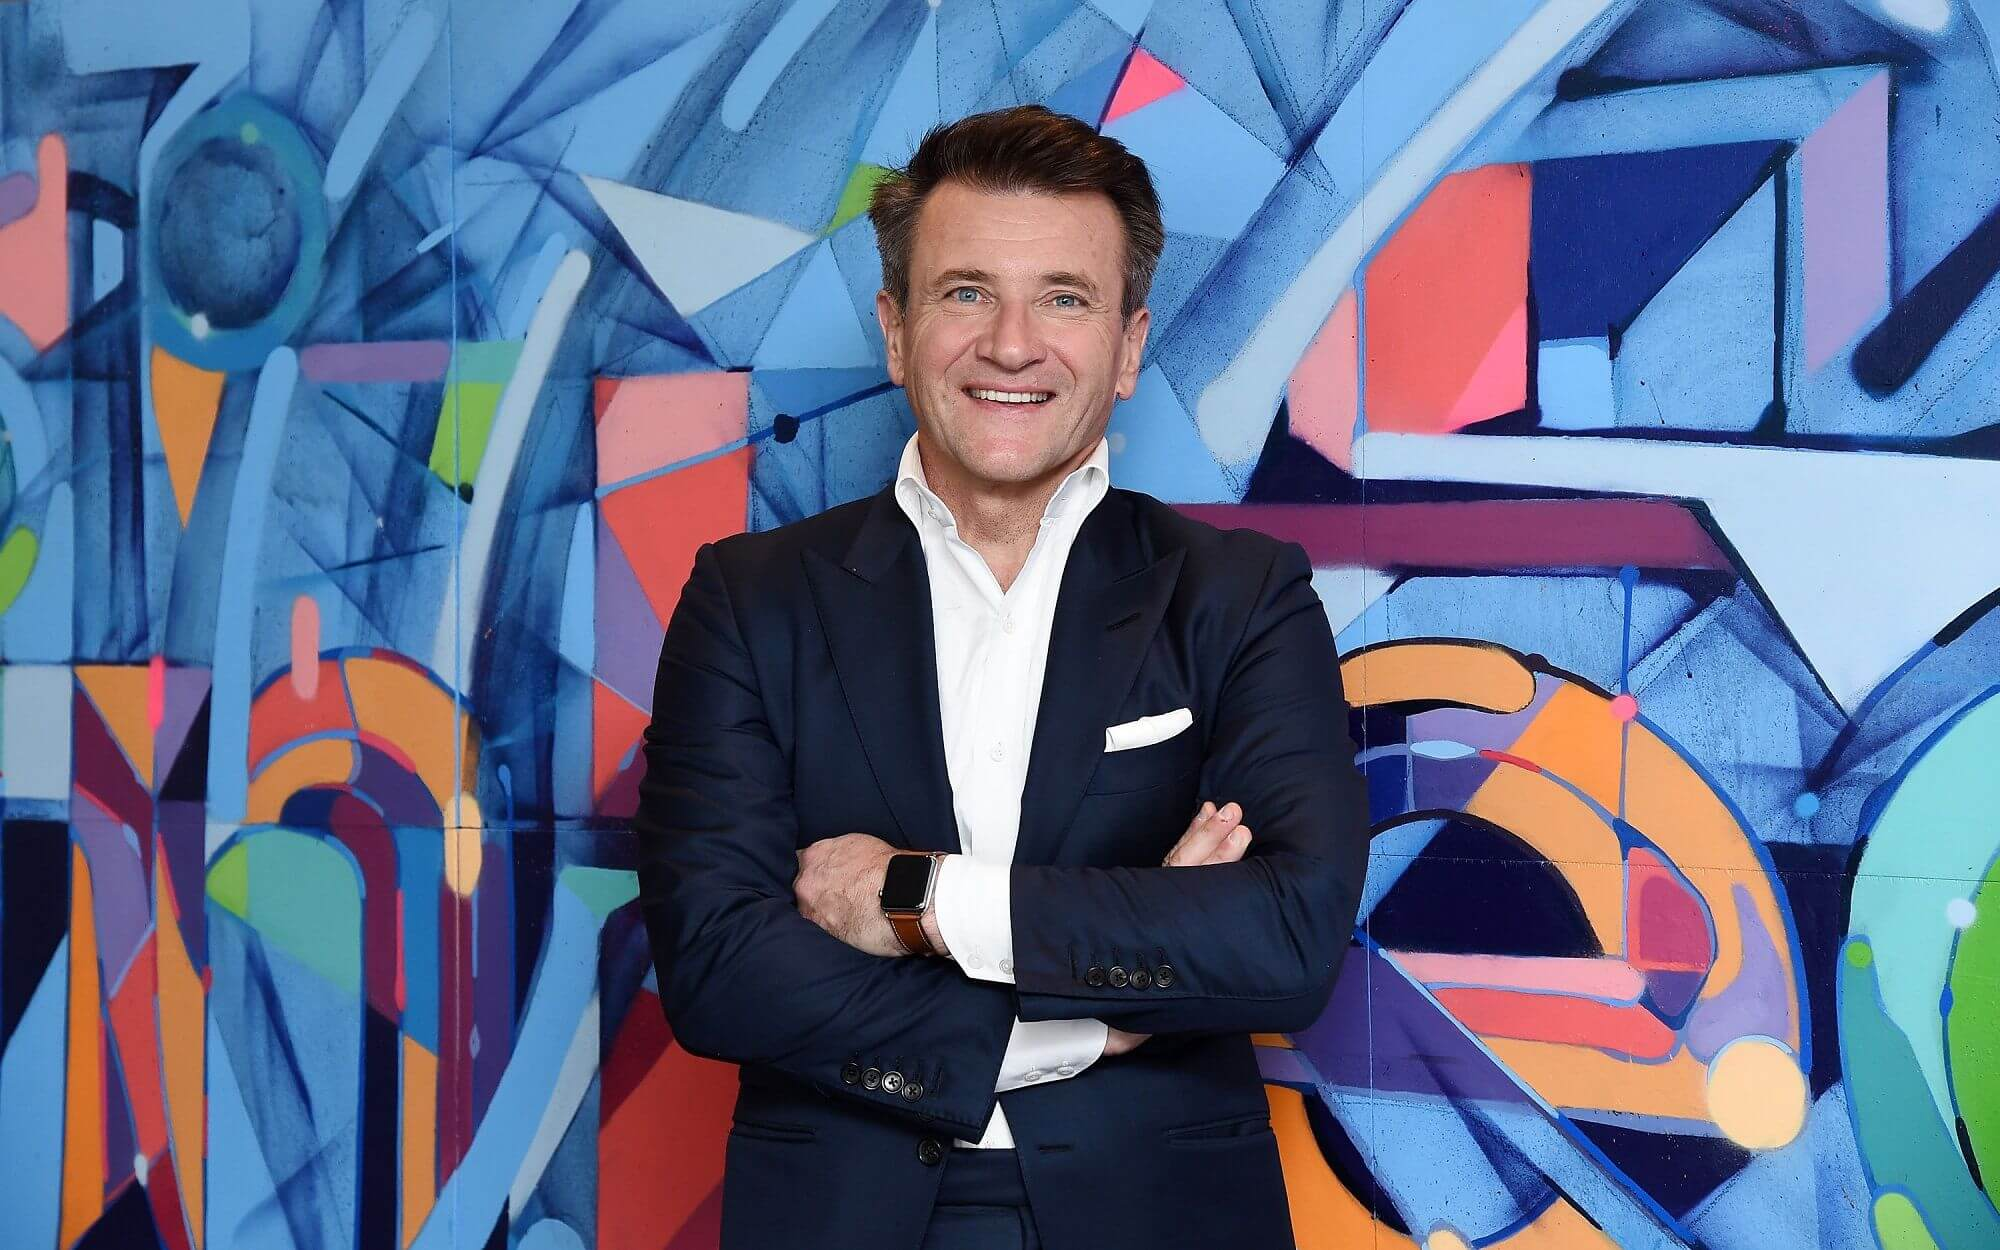 'Shark Tank' star Robert Herjavec